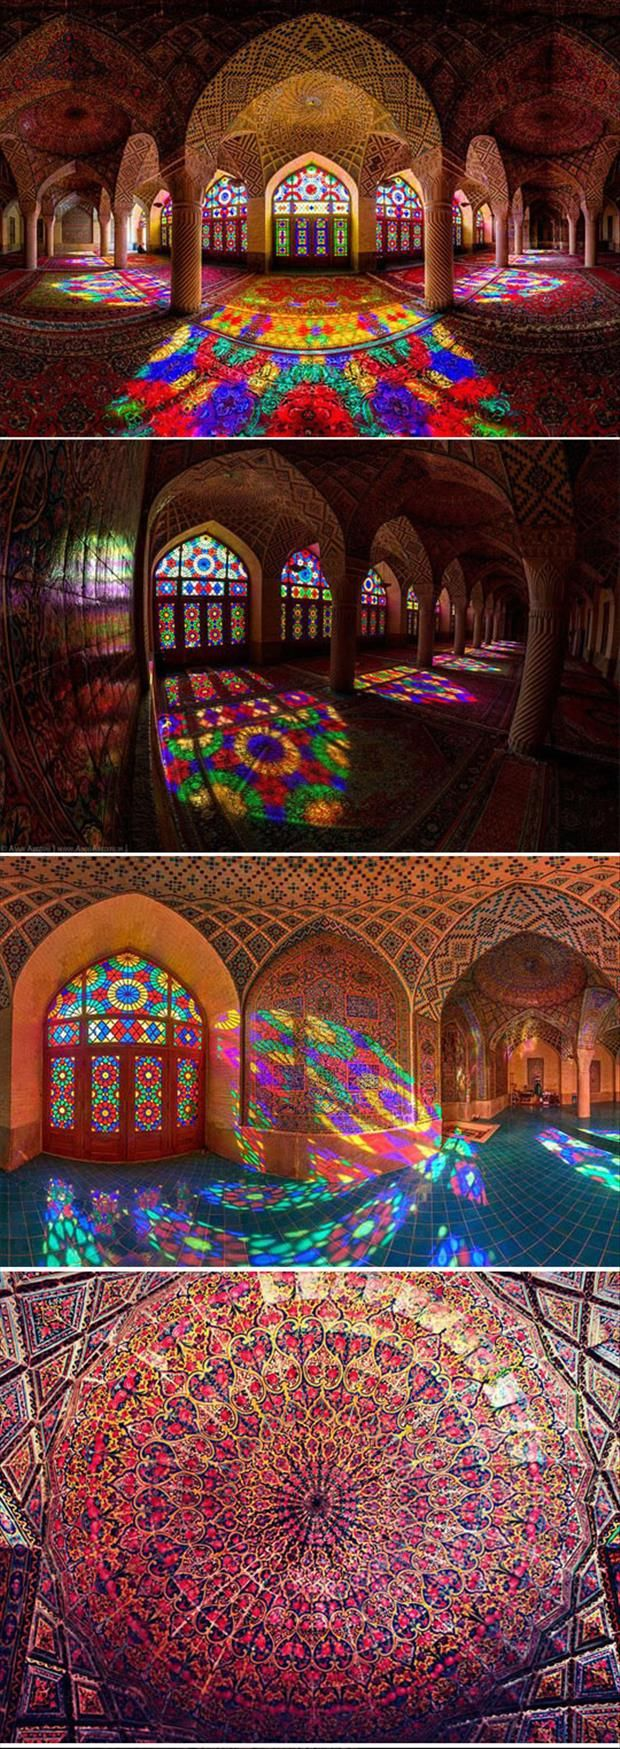 Just shows you how amazing stained glass can be. Fantastic reflections of light and colour.